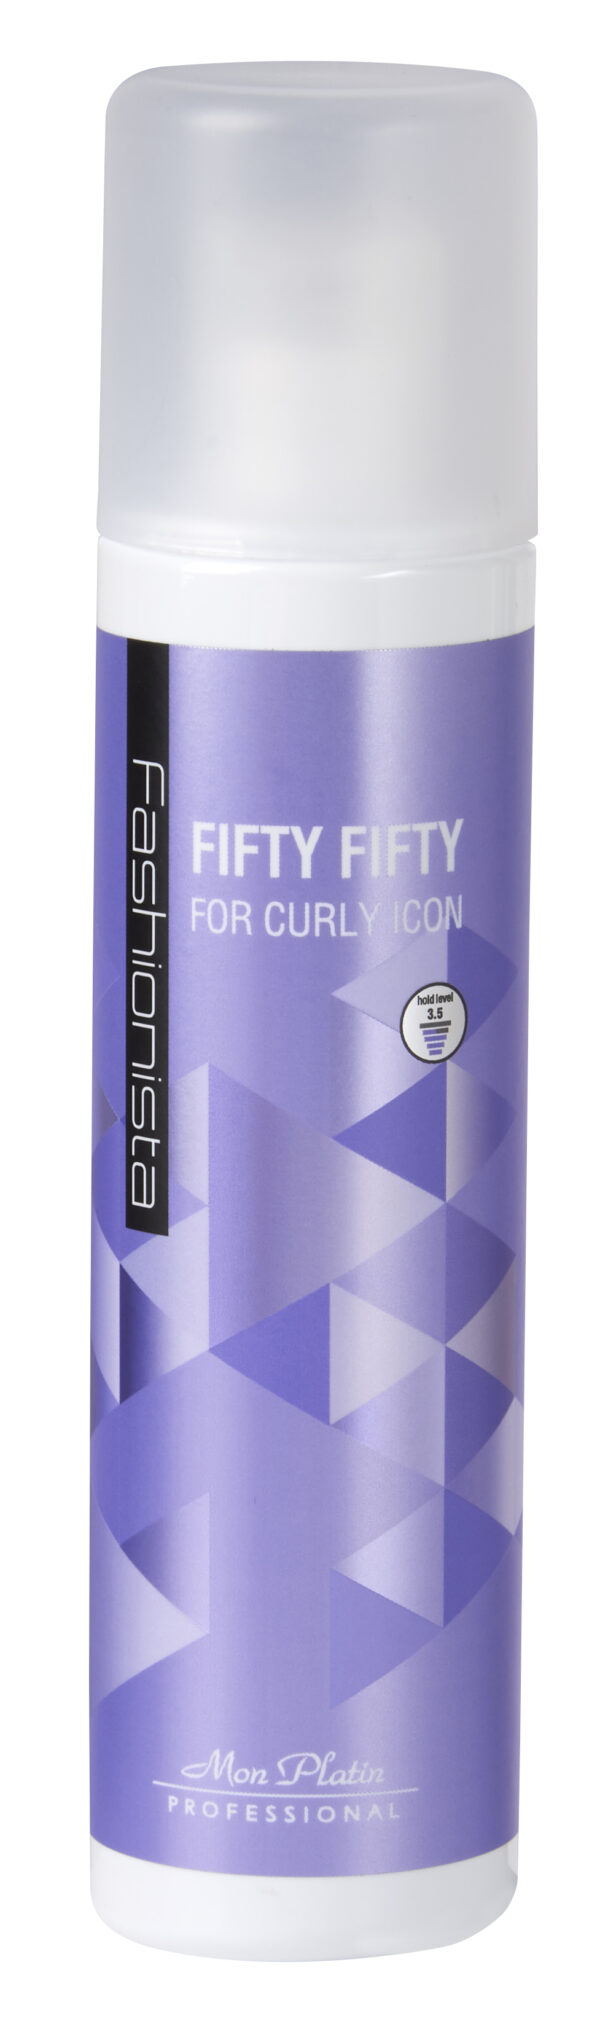 Mon Platin Fashionista Fifty/ Fifty For Curly Icon 250ml Styling